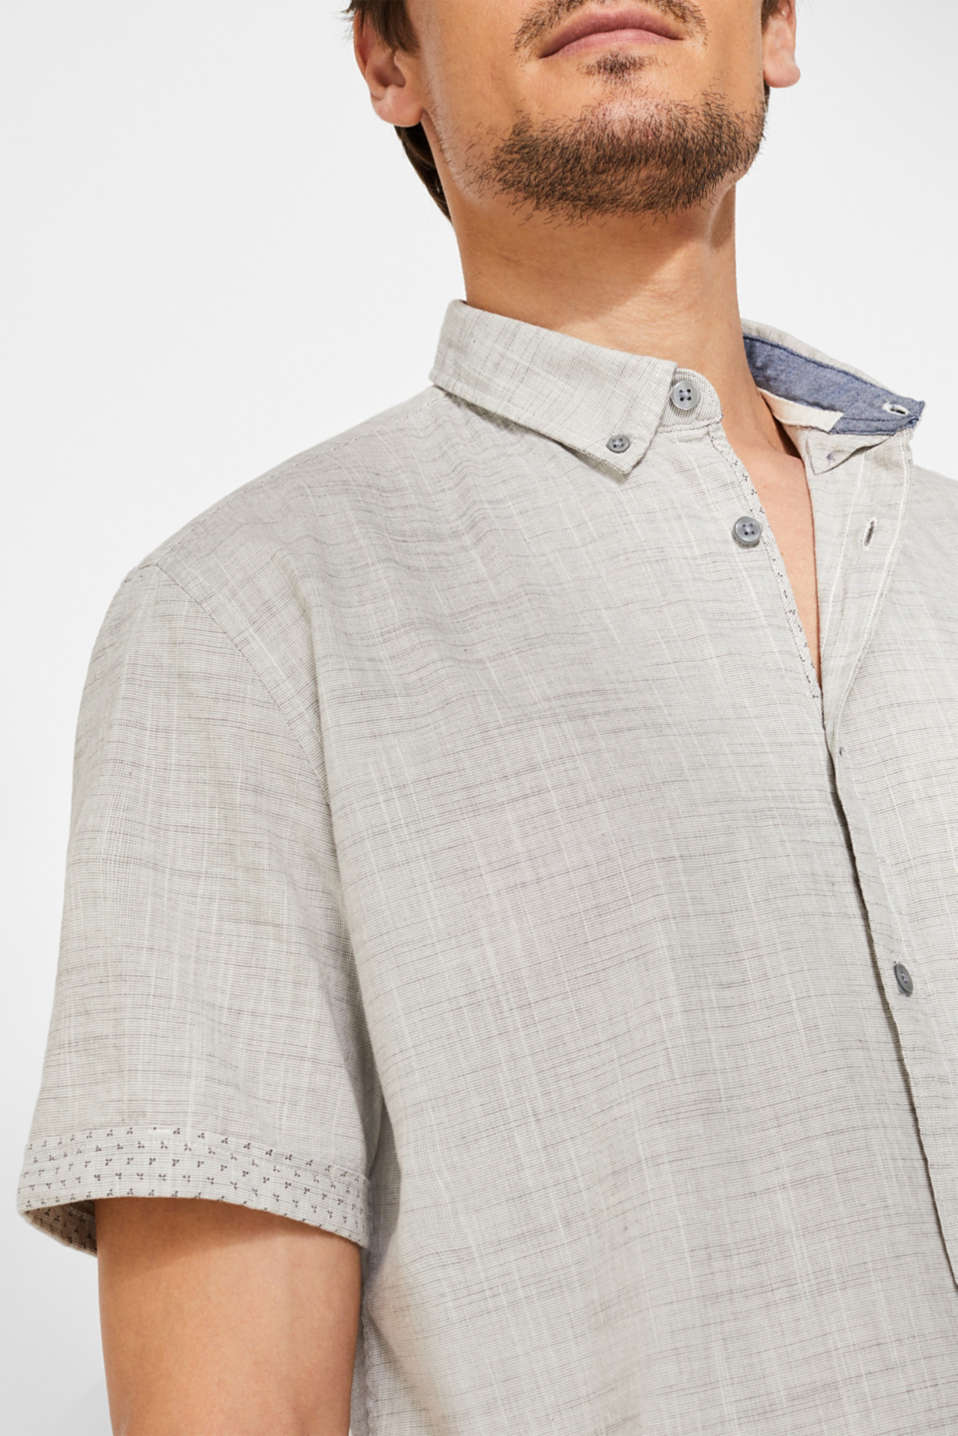 Shirts woven Slim fit, LIGHT GREY, detail image number 2